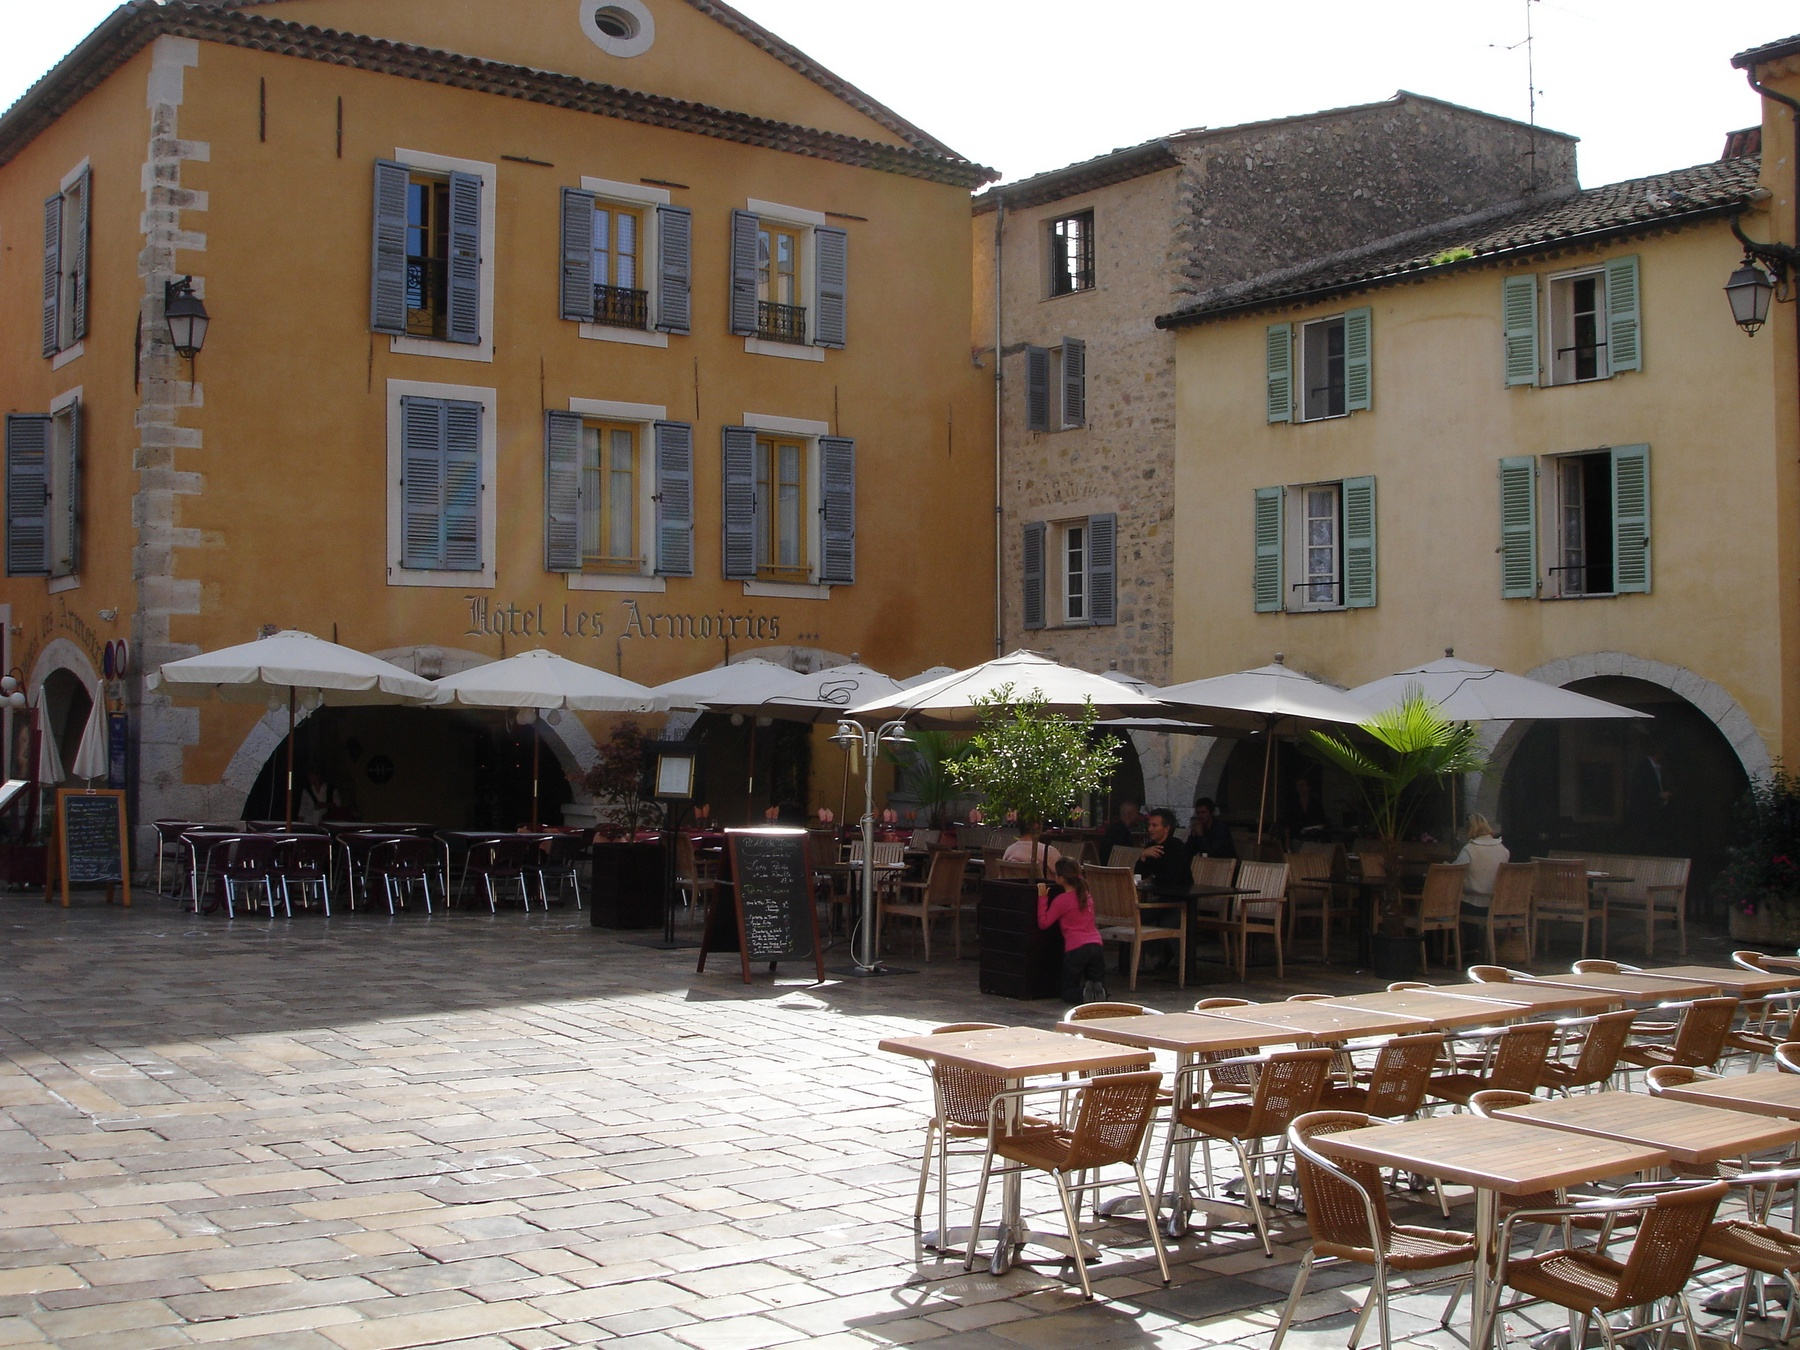 Valbonne centrum plein met restaurants